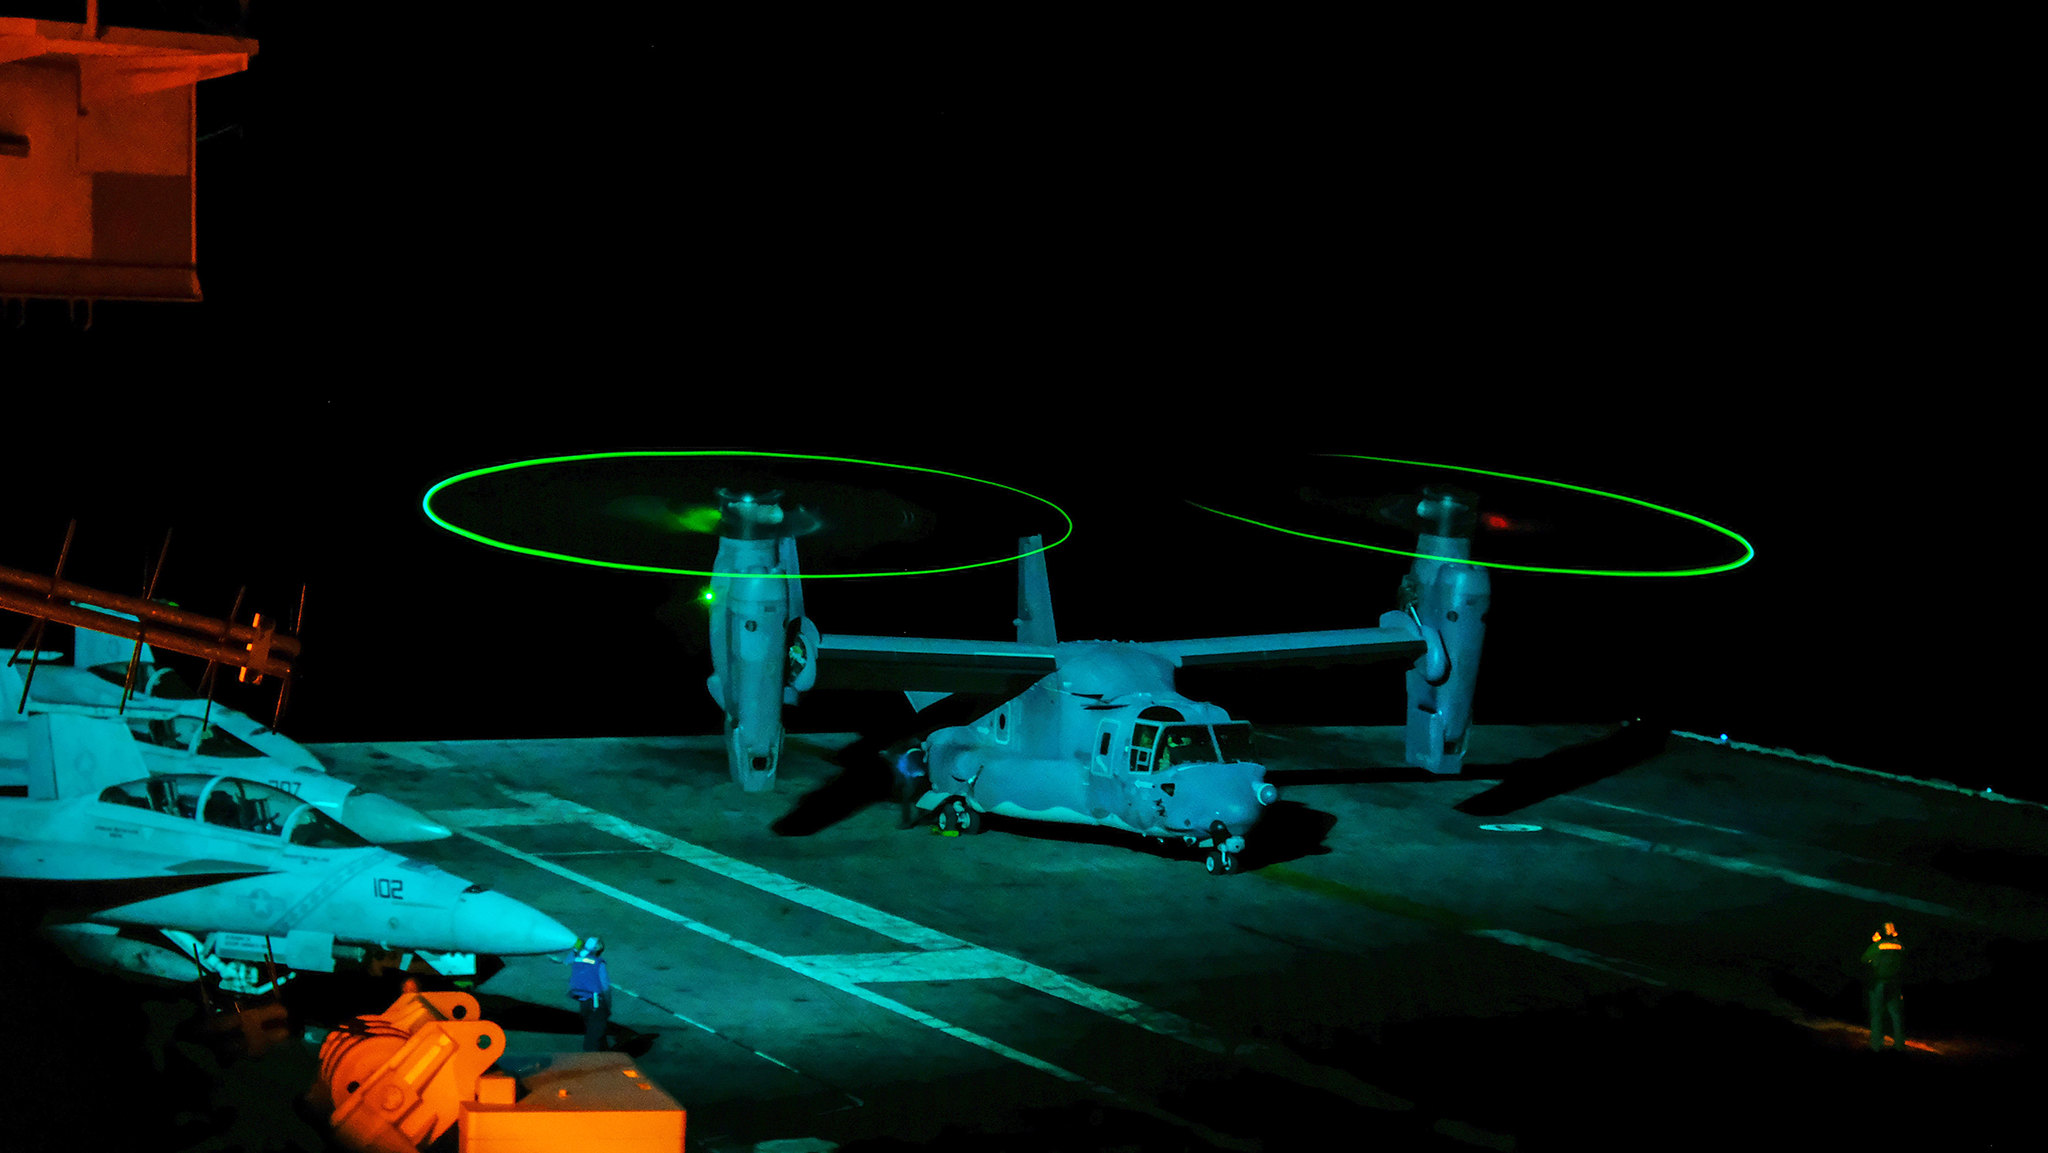 A CV-22 Osprey from the U.S. Air Force 21st Special Operations Squadron in Yokota, Japan, conducts flight operations from the flight deck of the aircraft carrier USS Ronald Reagan (CVN 76) on Aug. 22, 2019, in the Philippine Sea. (Mass Communication Specialist 1st Class Rufus Hucks/Navy)